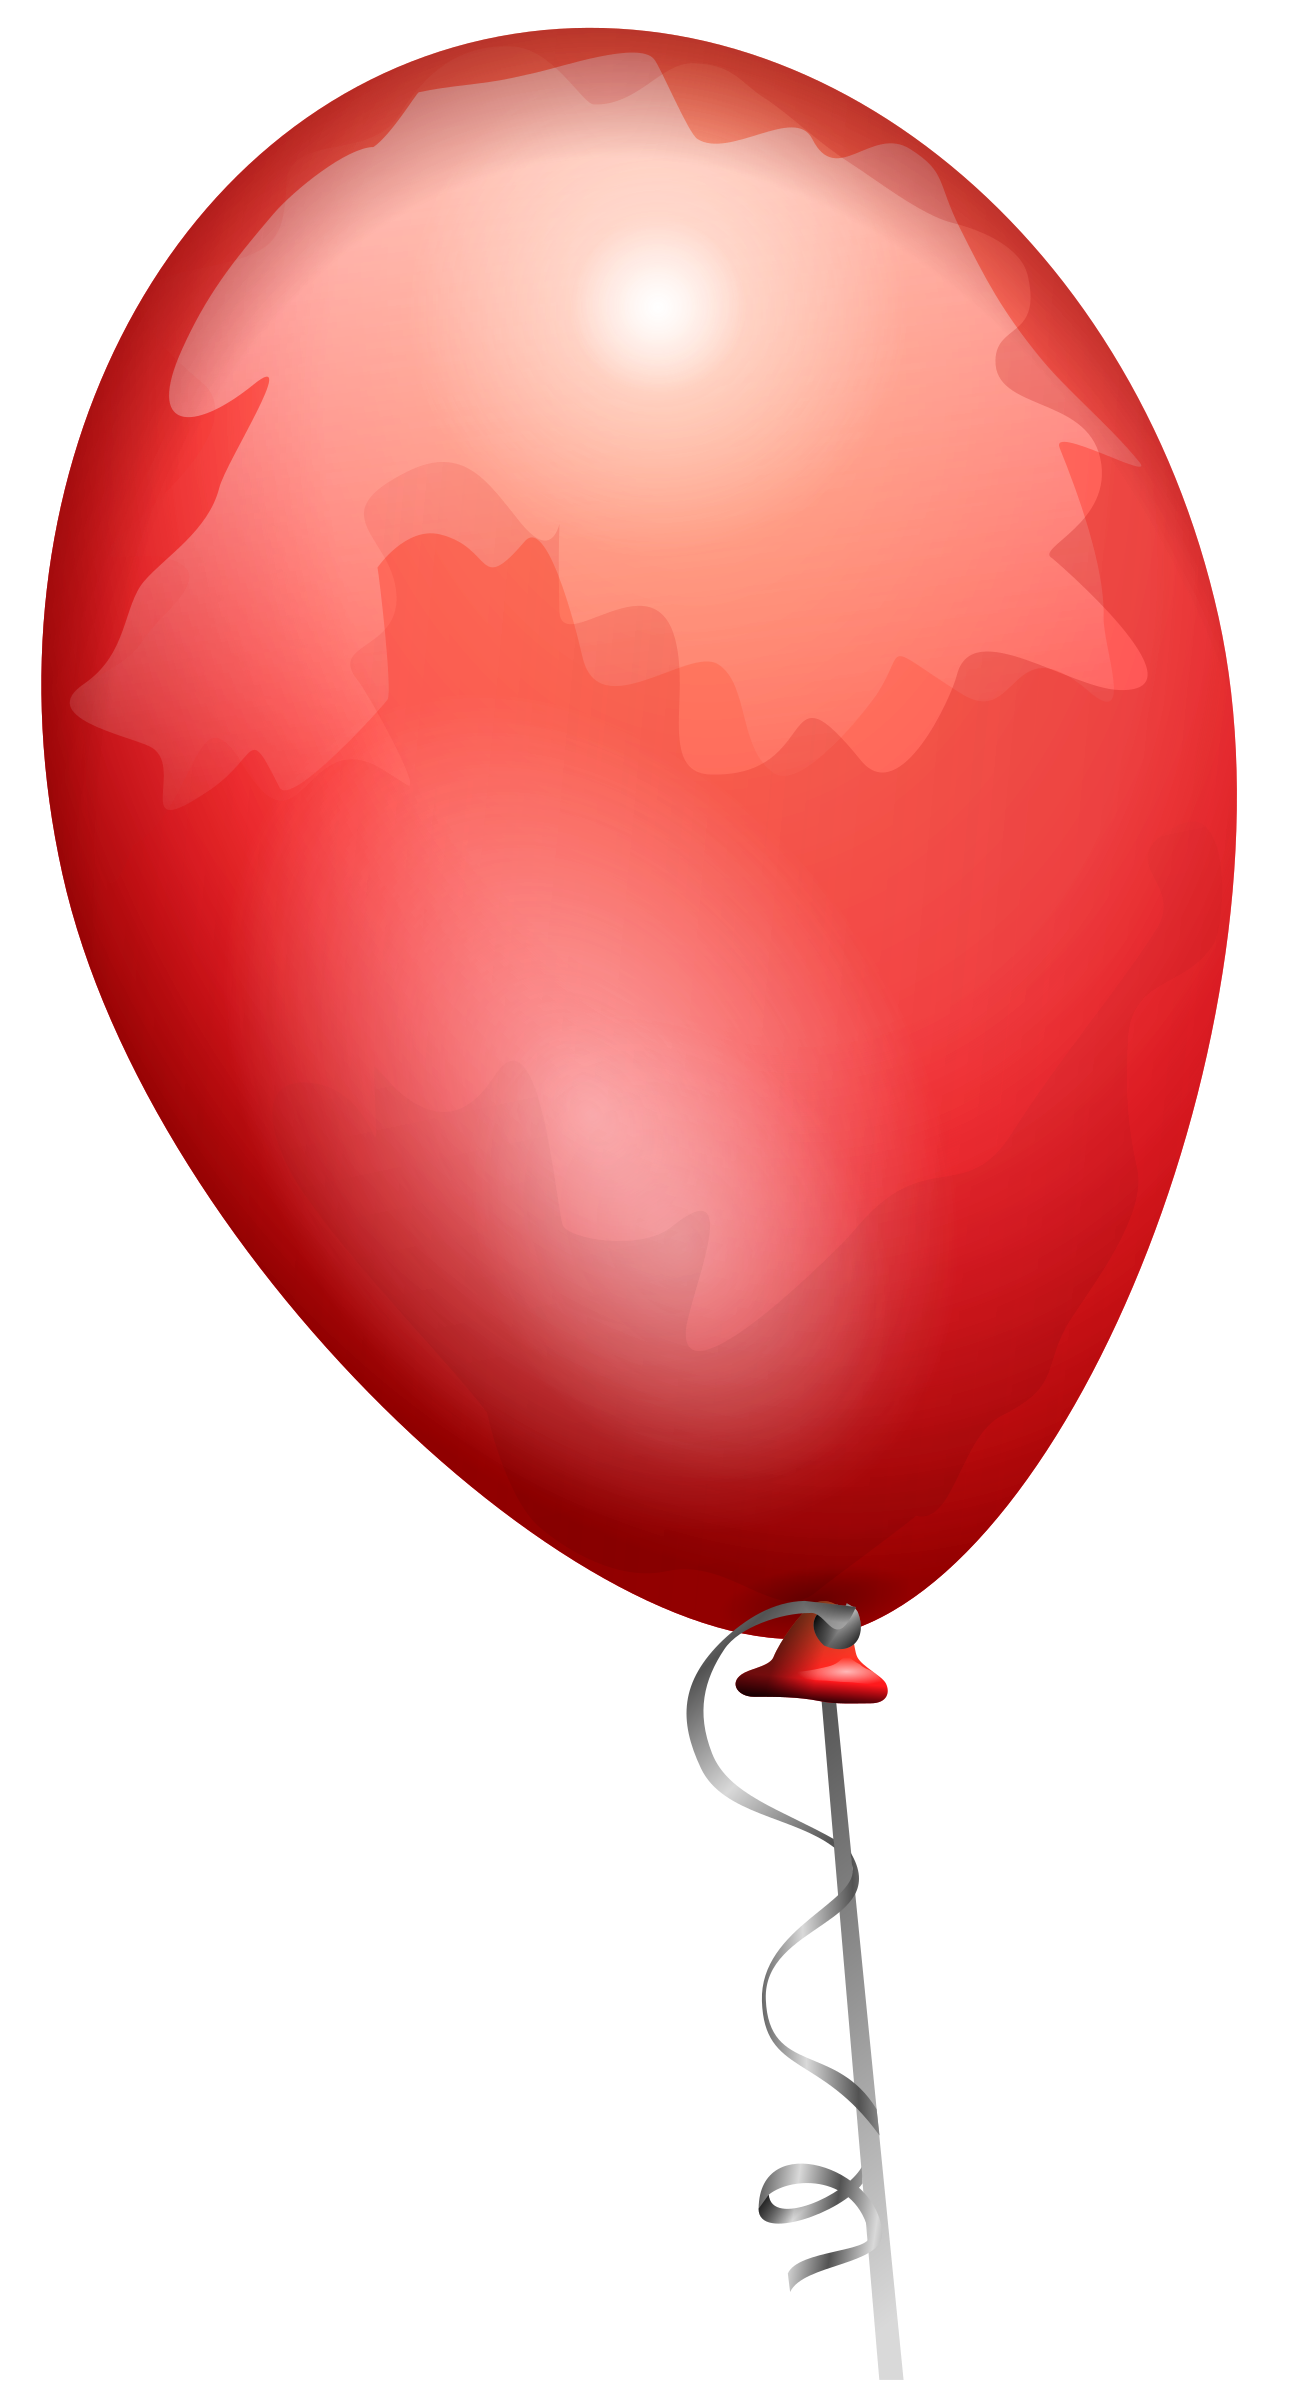 balloon-red-aj by AJ